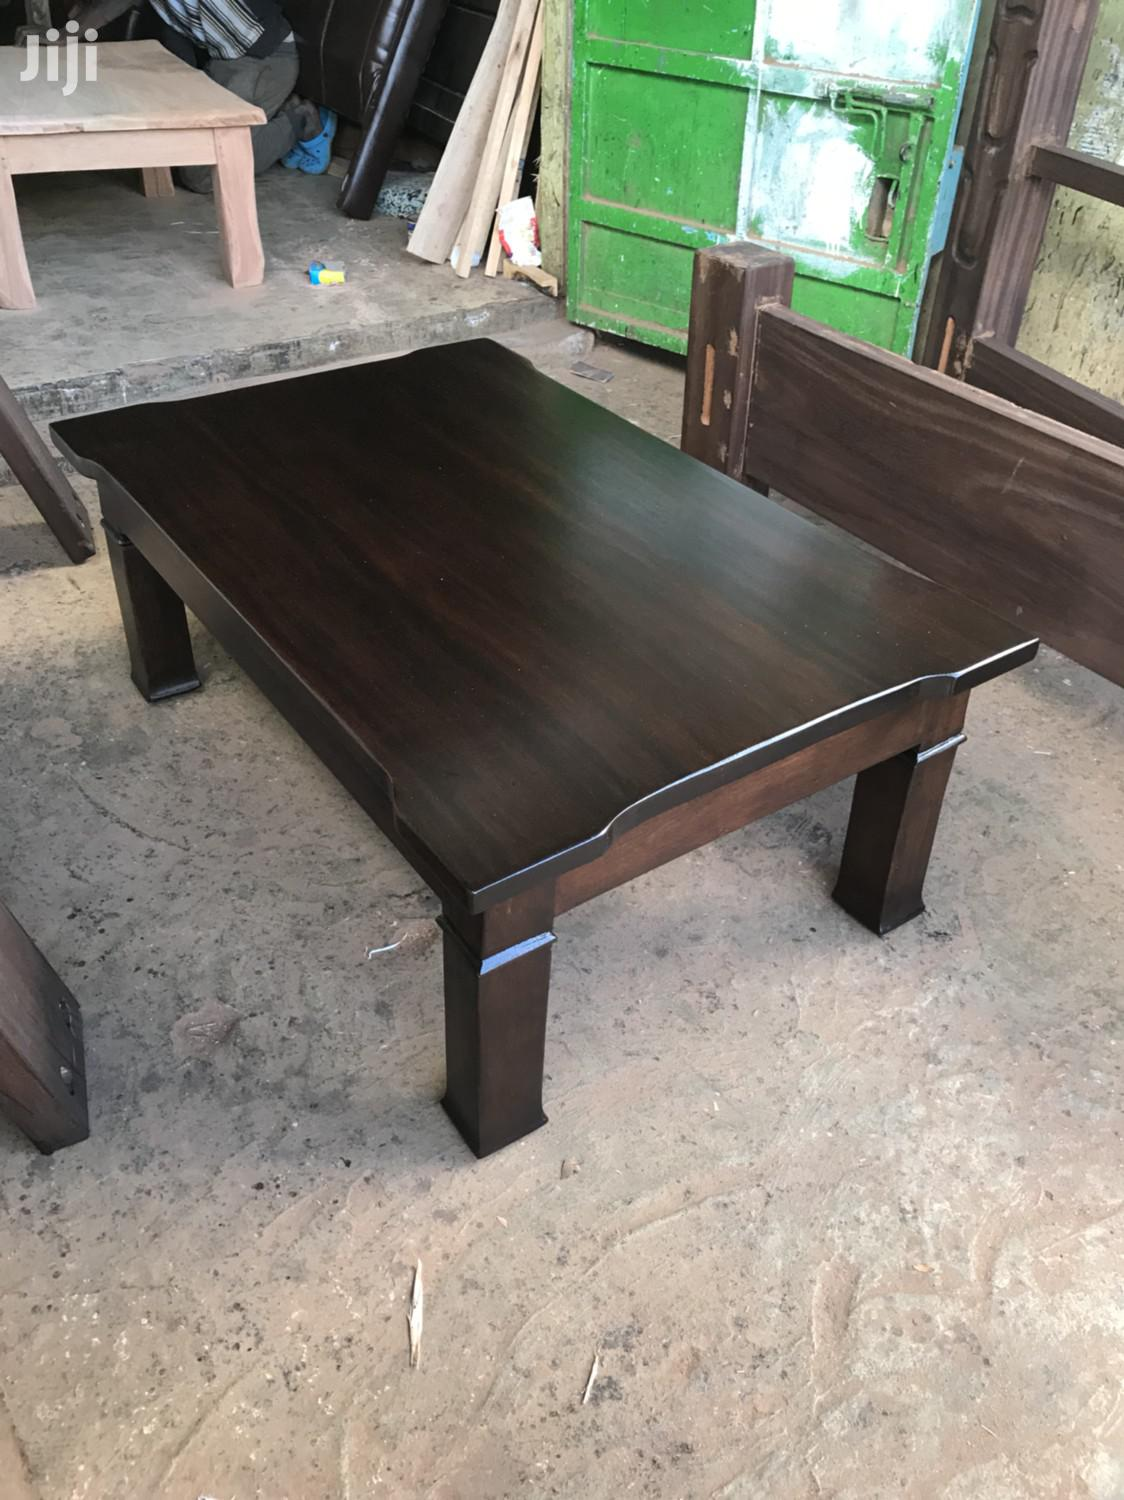 Coffee Table Made of Mahogany Wood in Karen - Furniture ...